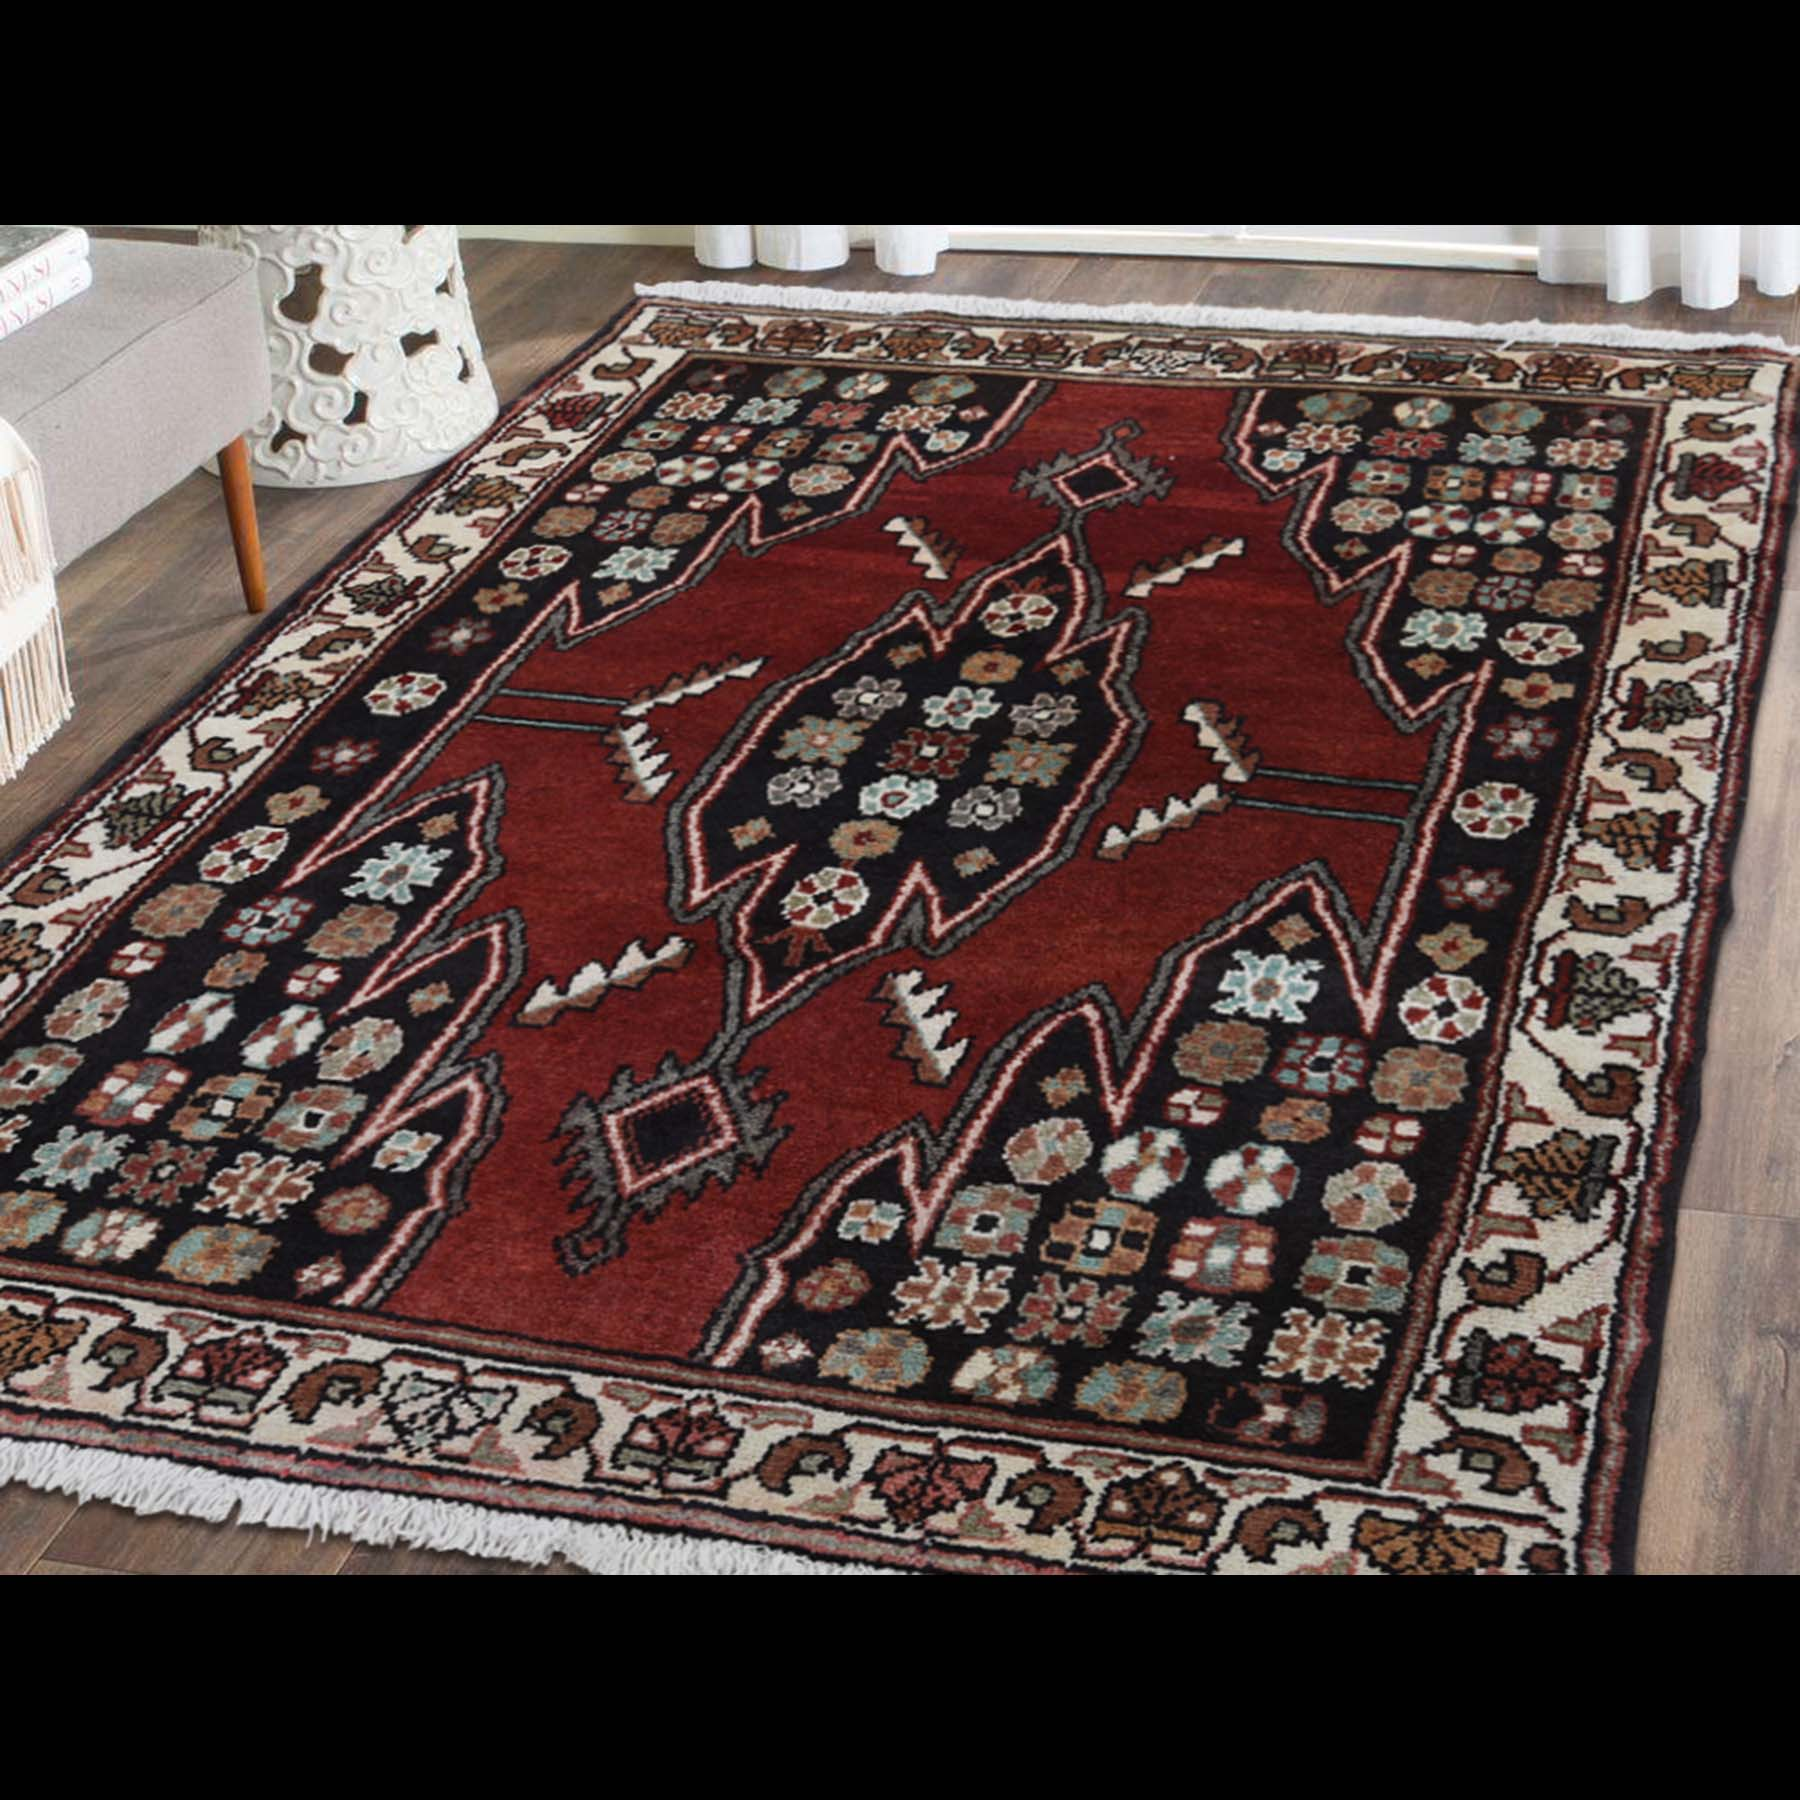 3-6 x4-8  New Persian Mazlagan Hand-Knotted Oriental Pure Wool Rug